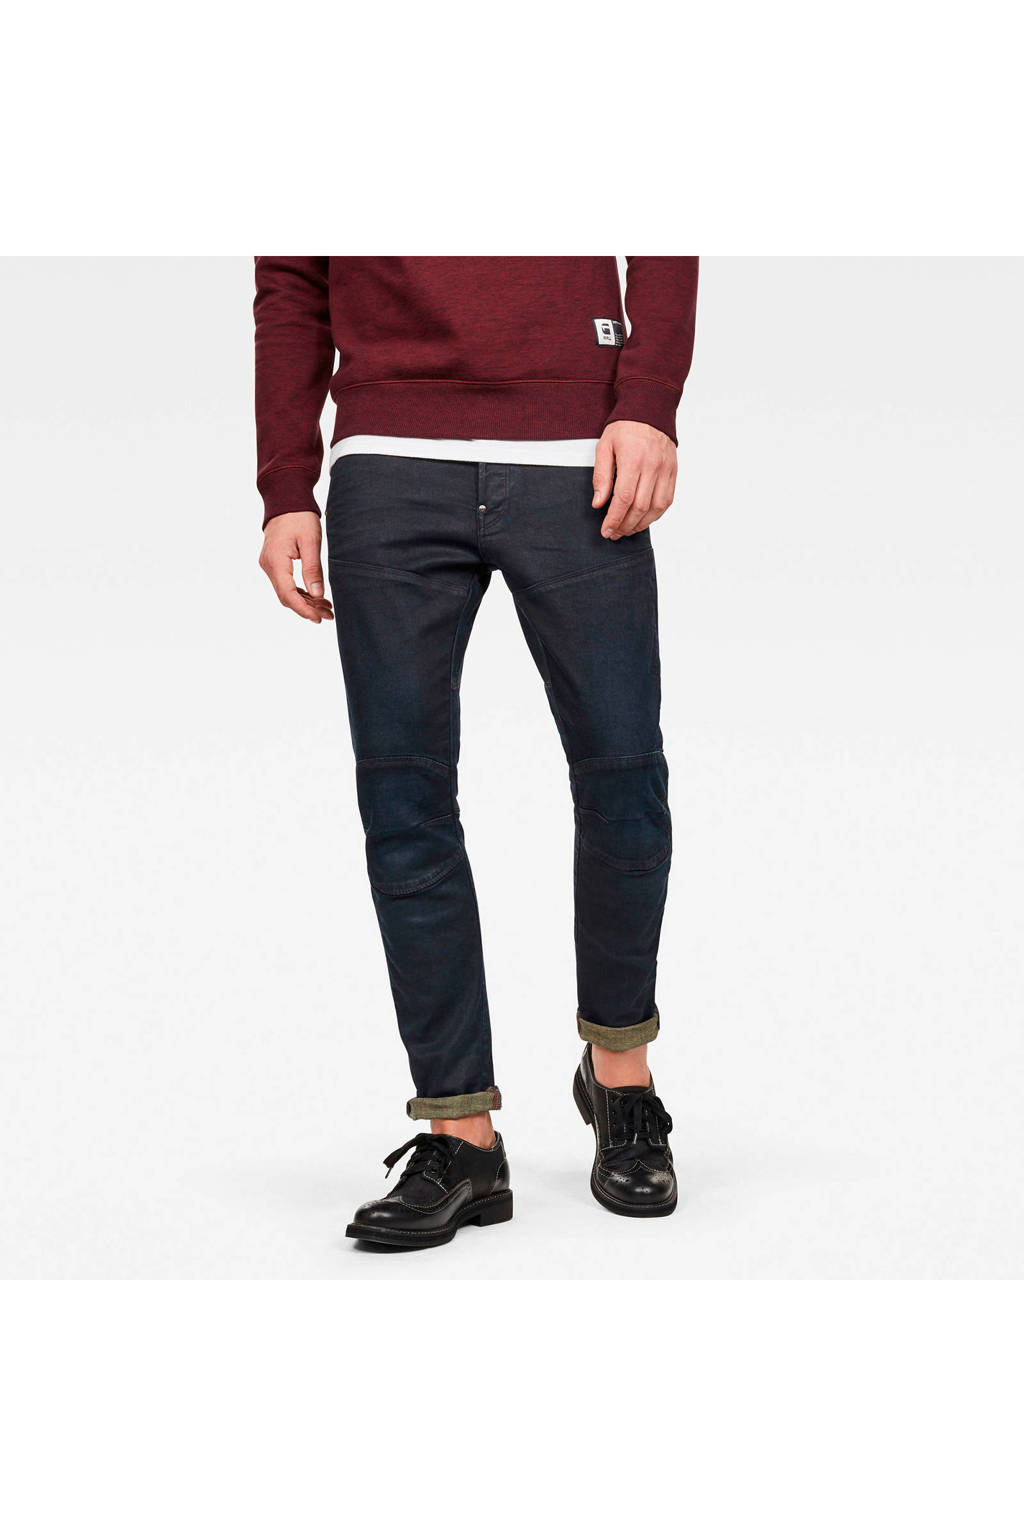 G-Star RAW slim fit jeans Elto dry waxed cobler, Dry Waxed cobler